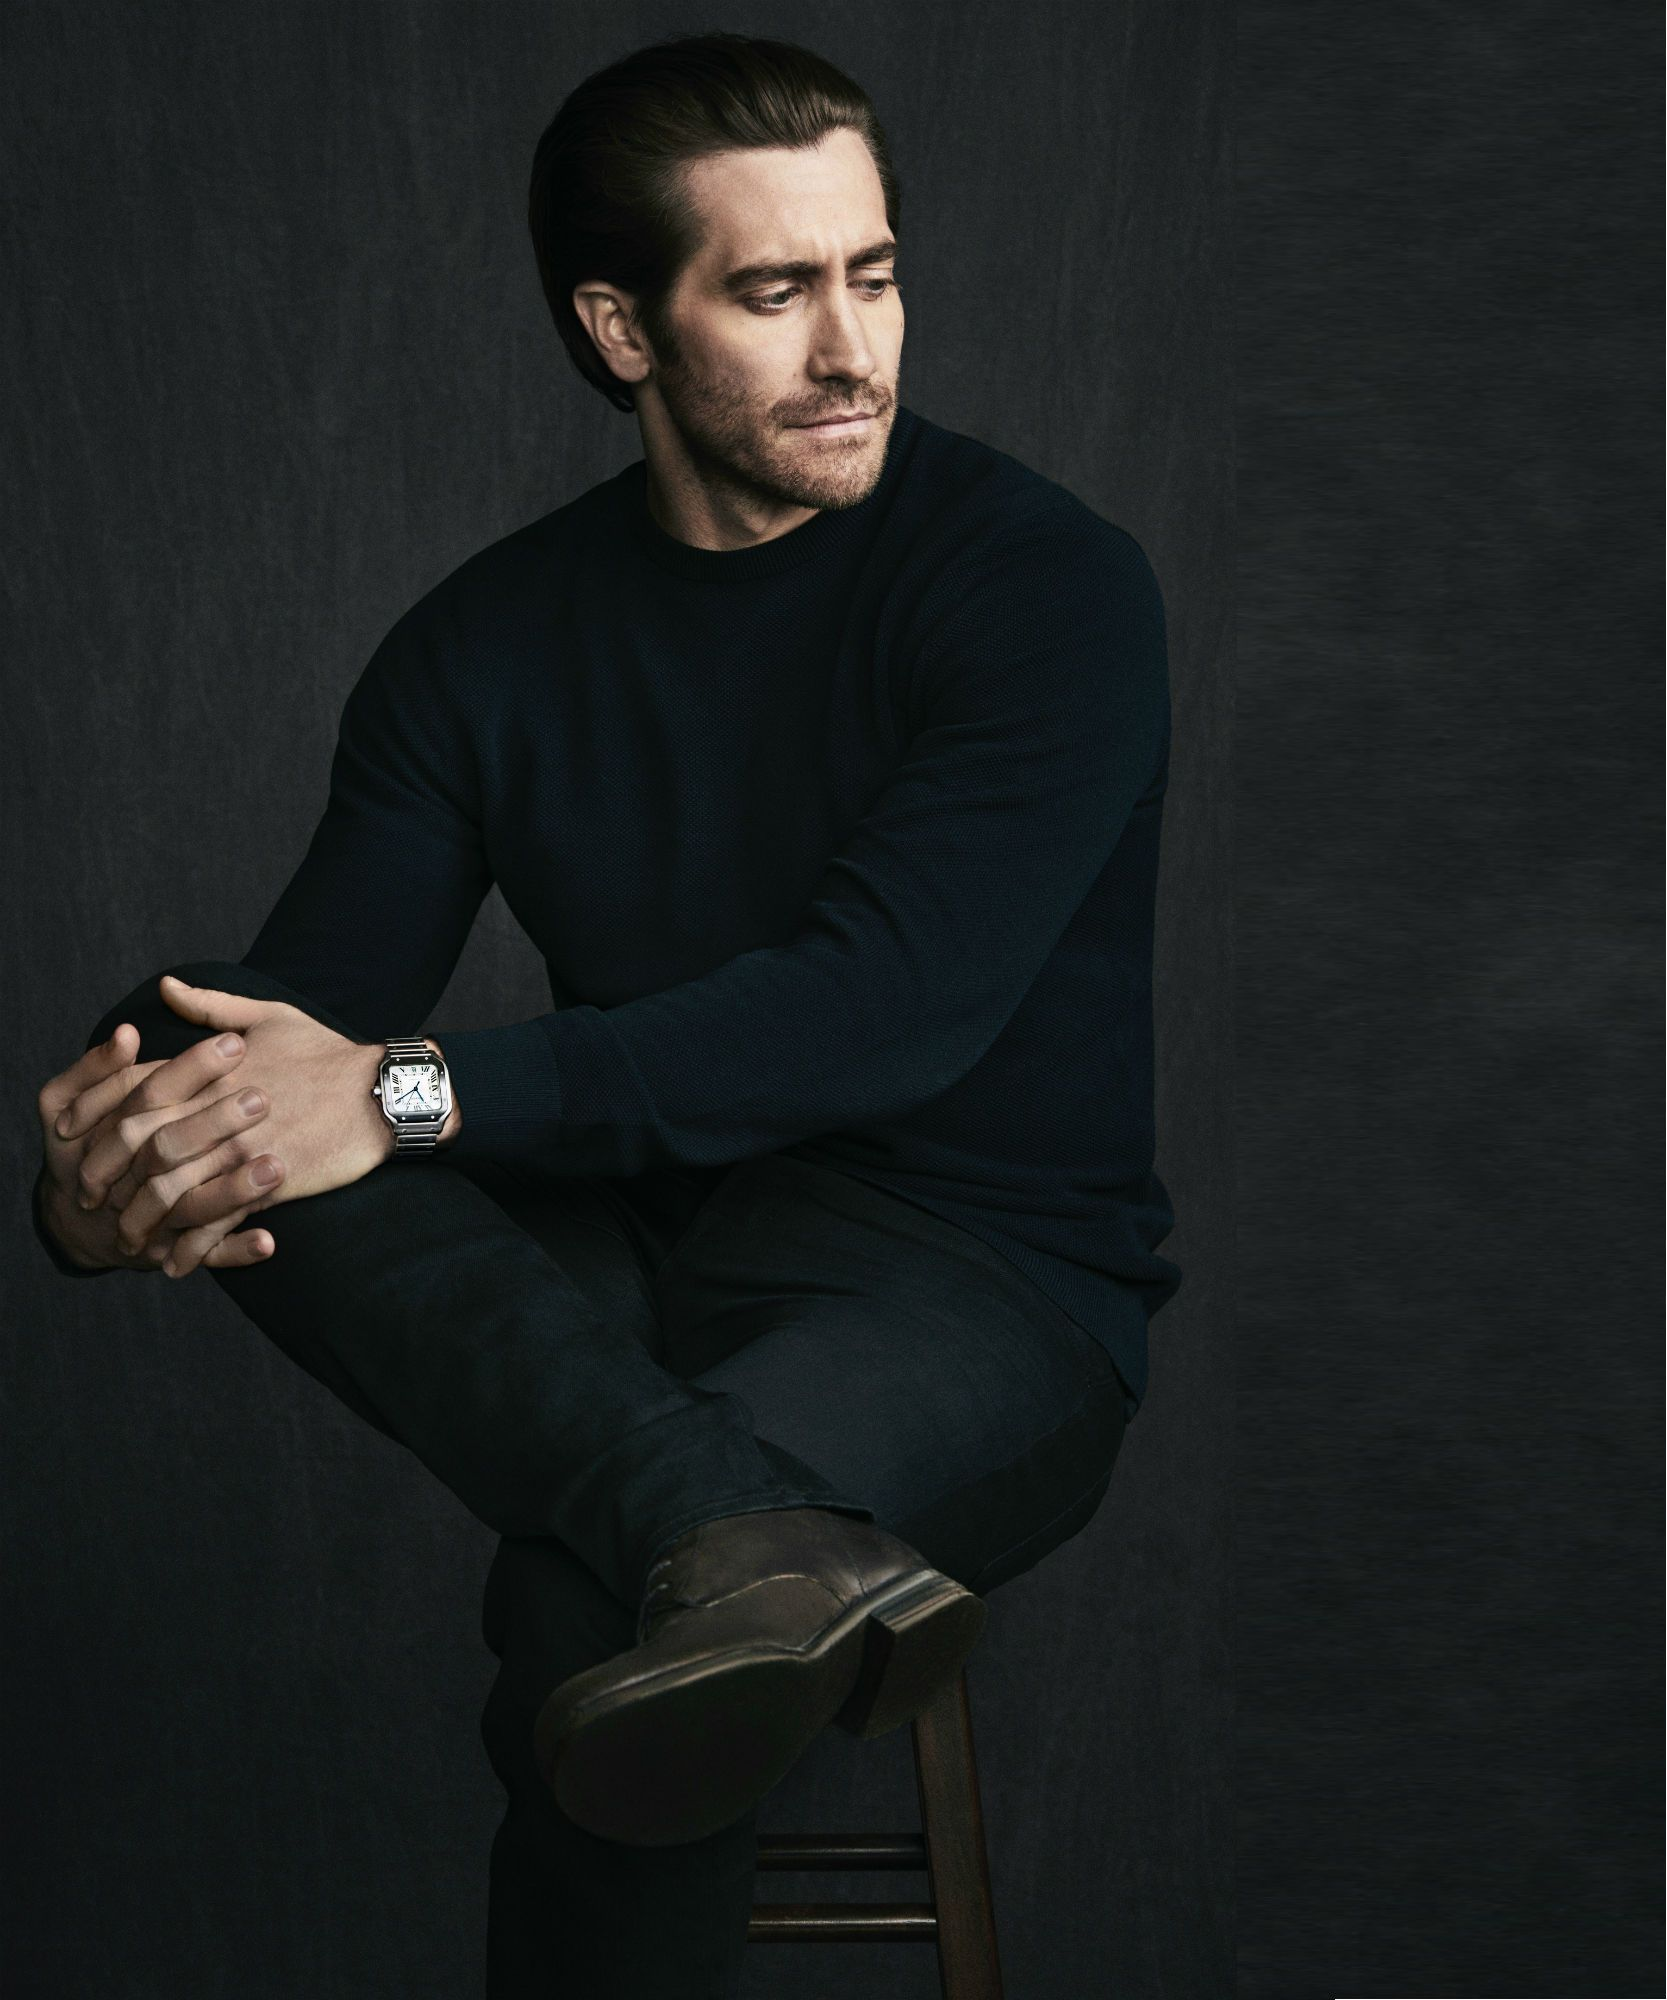 Jake Gyllenhaal To Front New Cartier Campaign